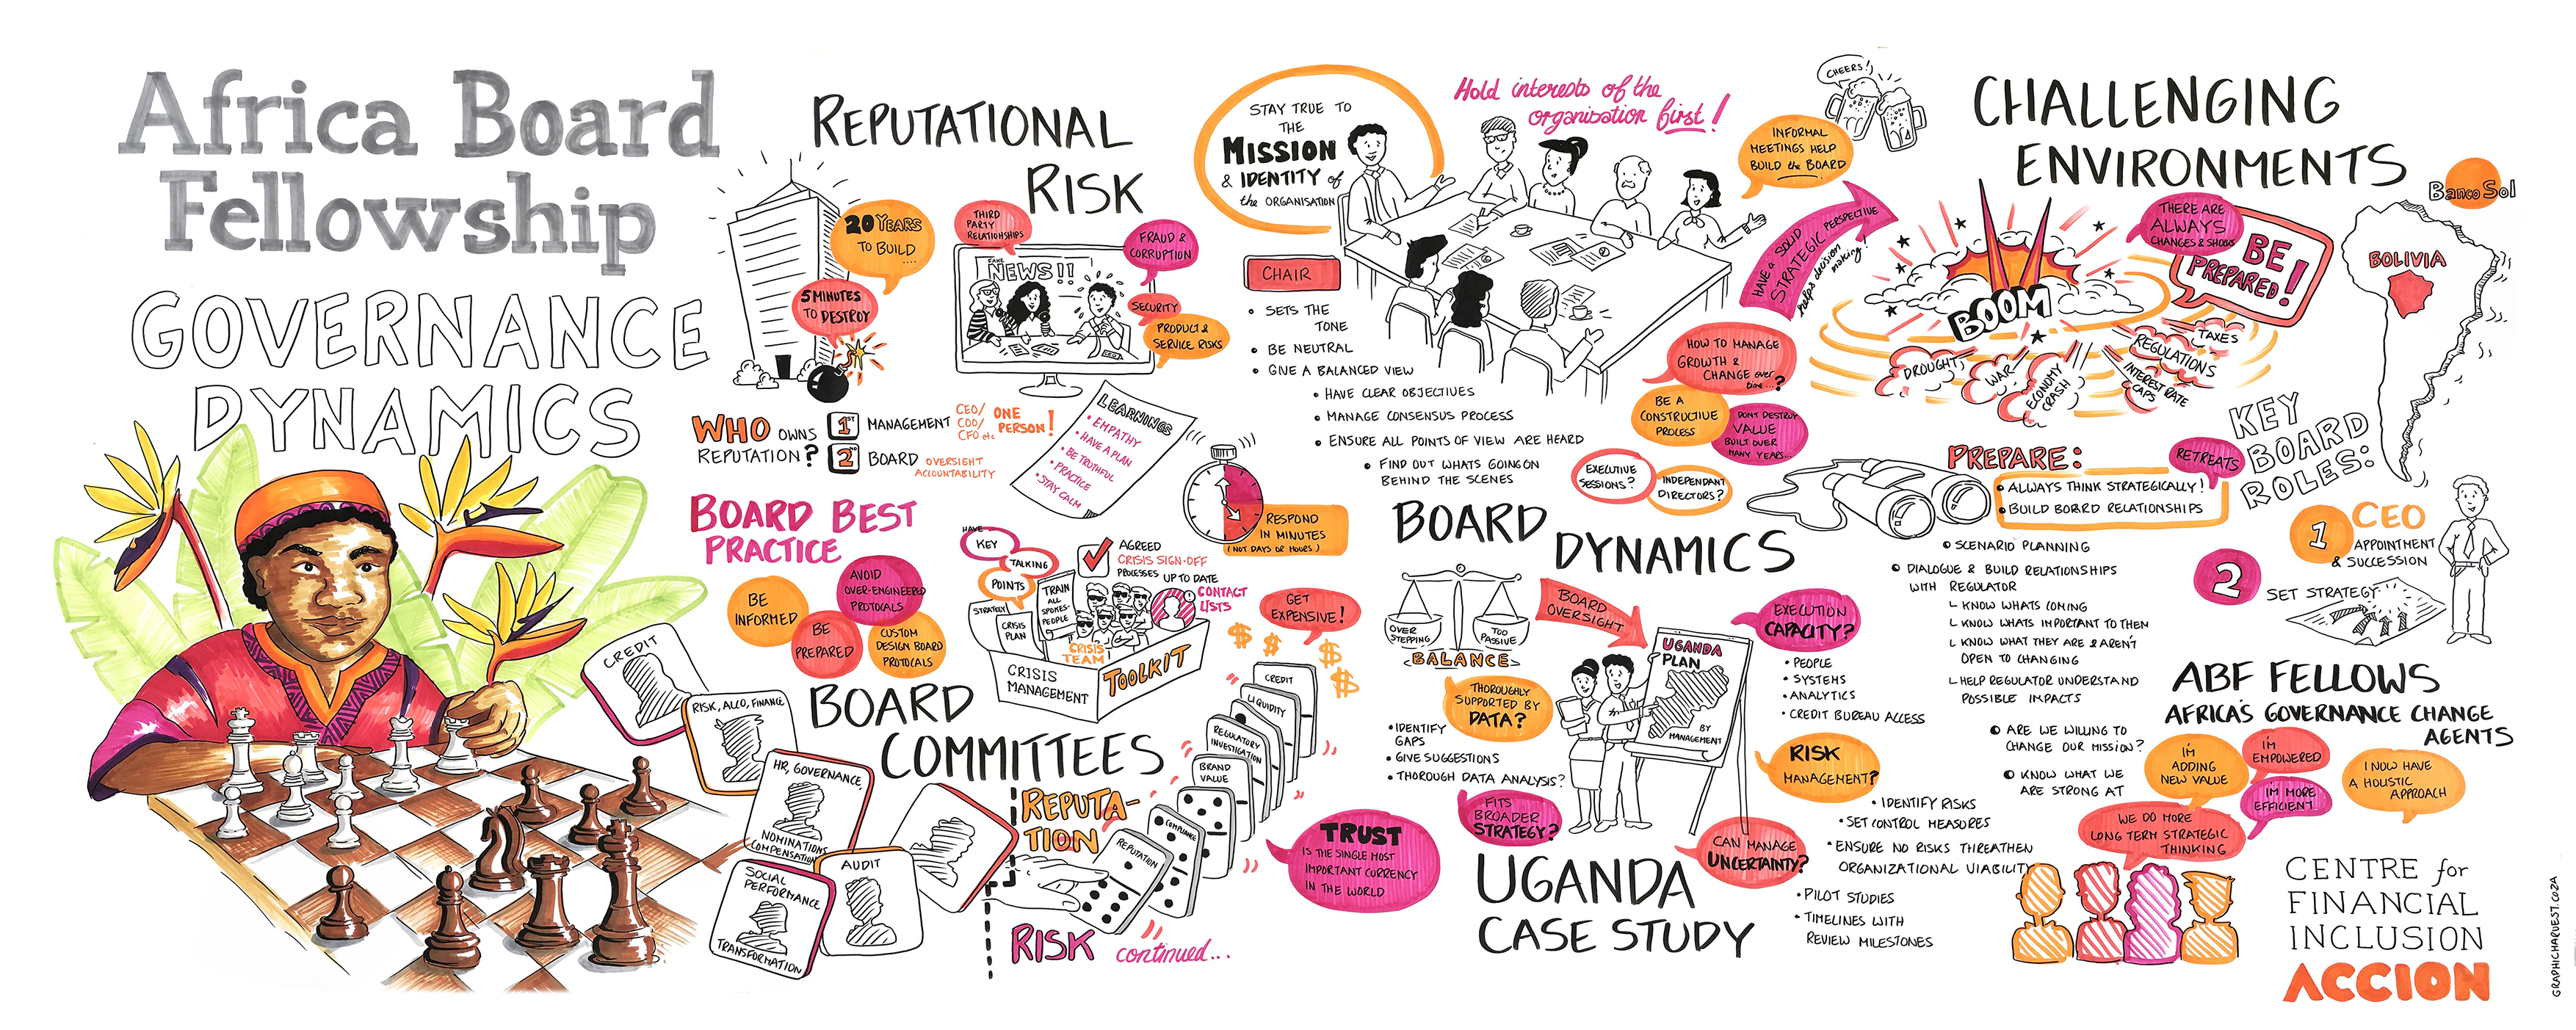 Rich graphic harvests help illustrate and demonstrate the governance and risk concepts fellows discuss during in-person seminars.